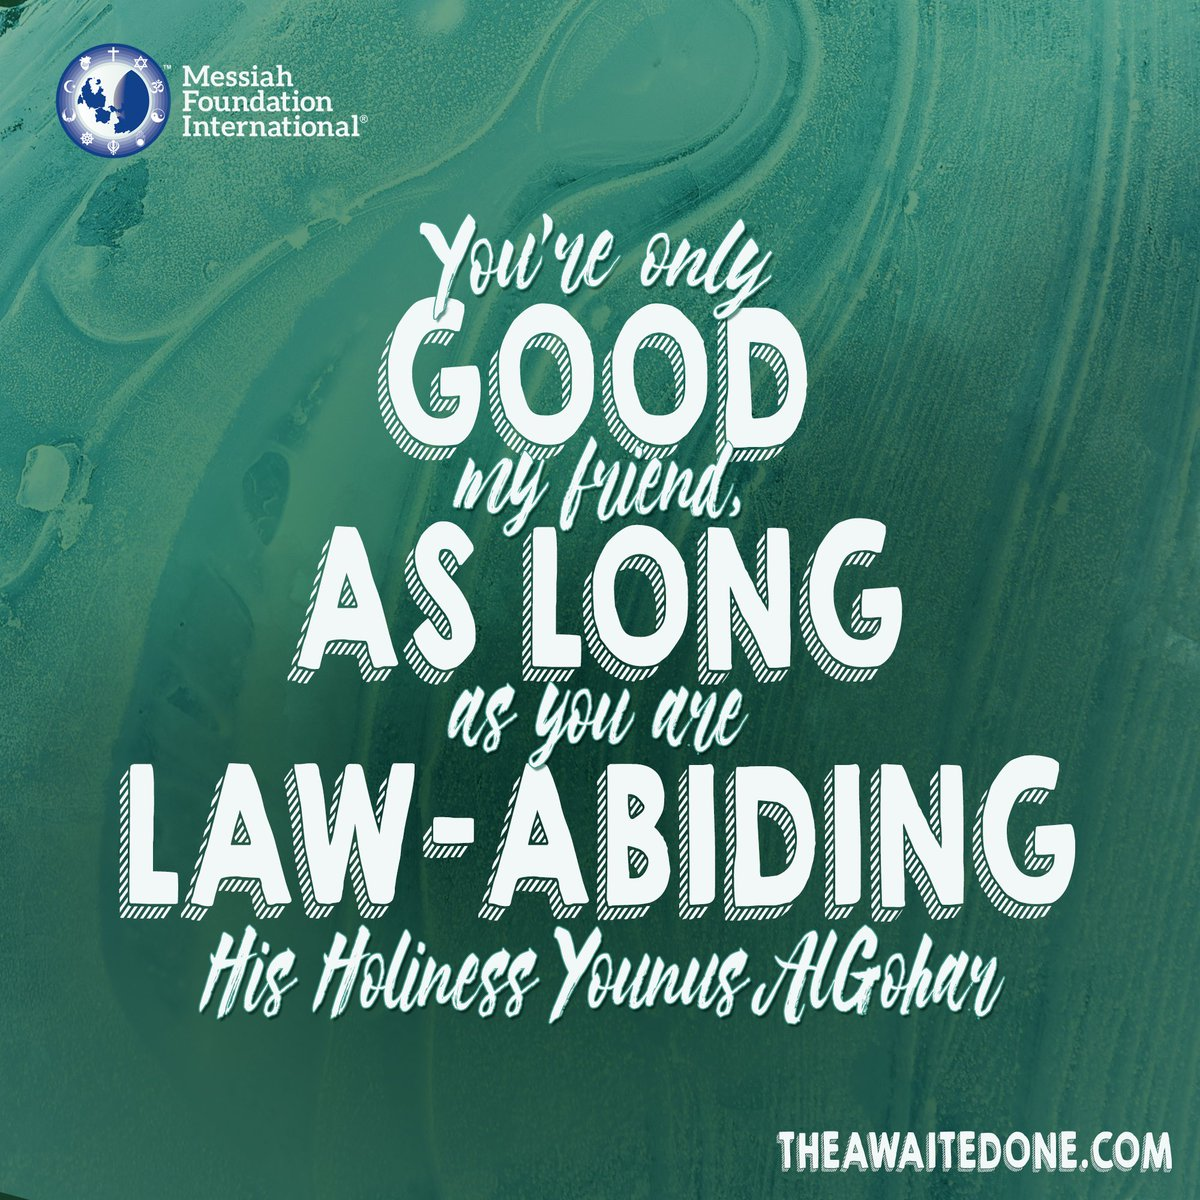 #QuoteoftheDay 'You're only good, my #friend, as long as you are law-abiding.' - HH #YounusAlGohar ( https:// medium.com/@YounusAlGohar /god-the-origins-of-evil-1df6ab70a020 &nbsp; … )<br>http://pic.twitter.com/PqzUoMblEt